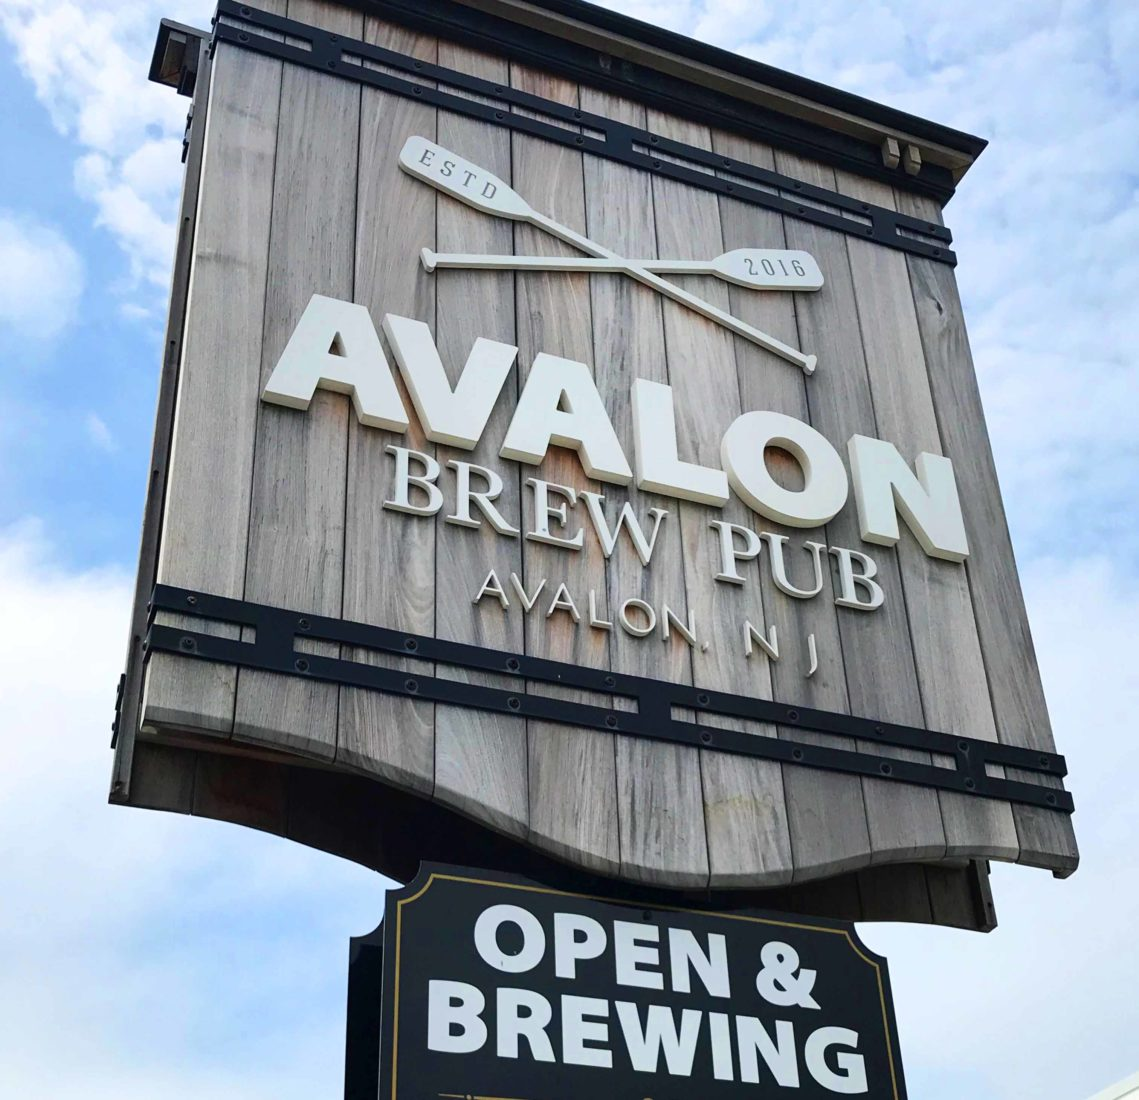 375. Avalon Brewing Company, Avalon NJ, 2018